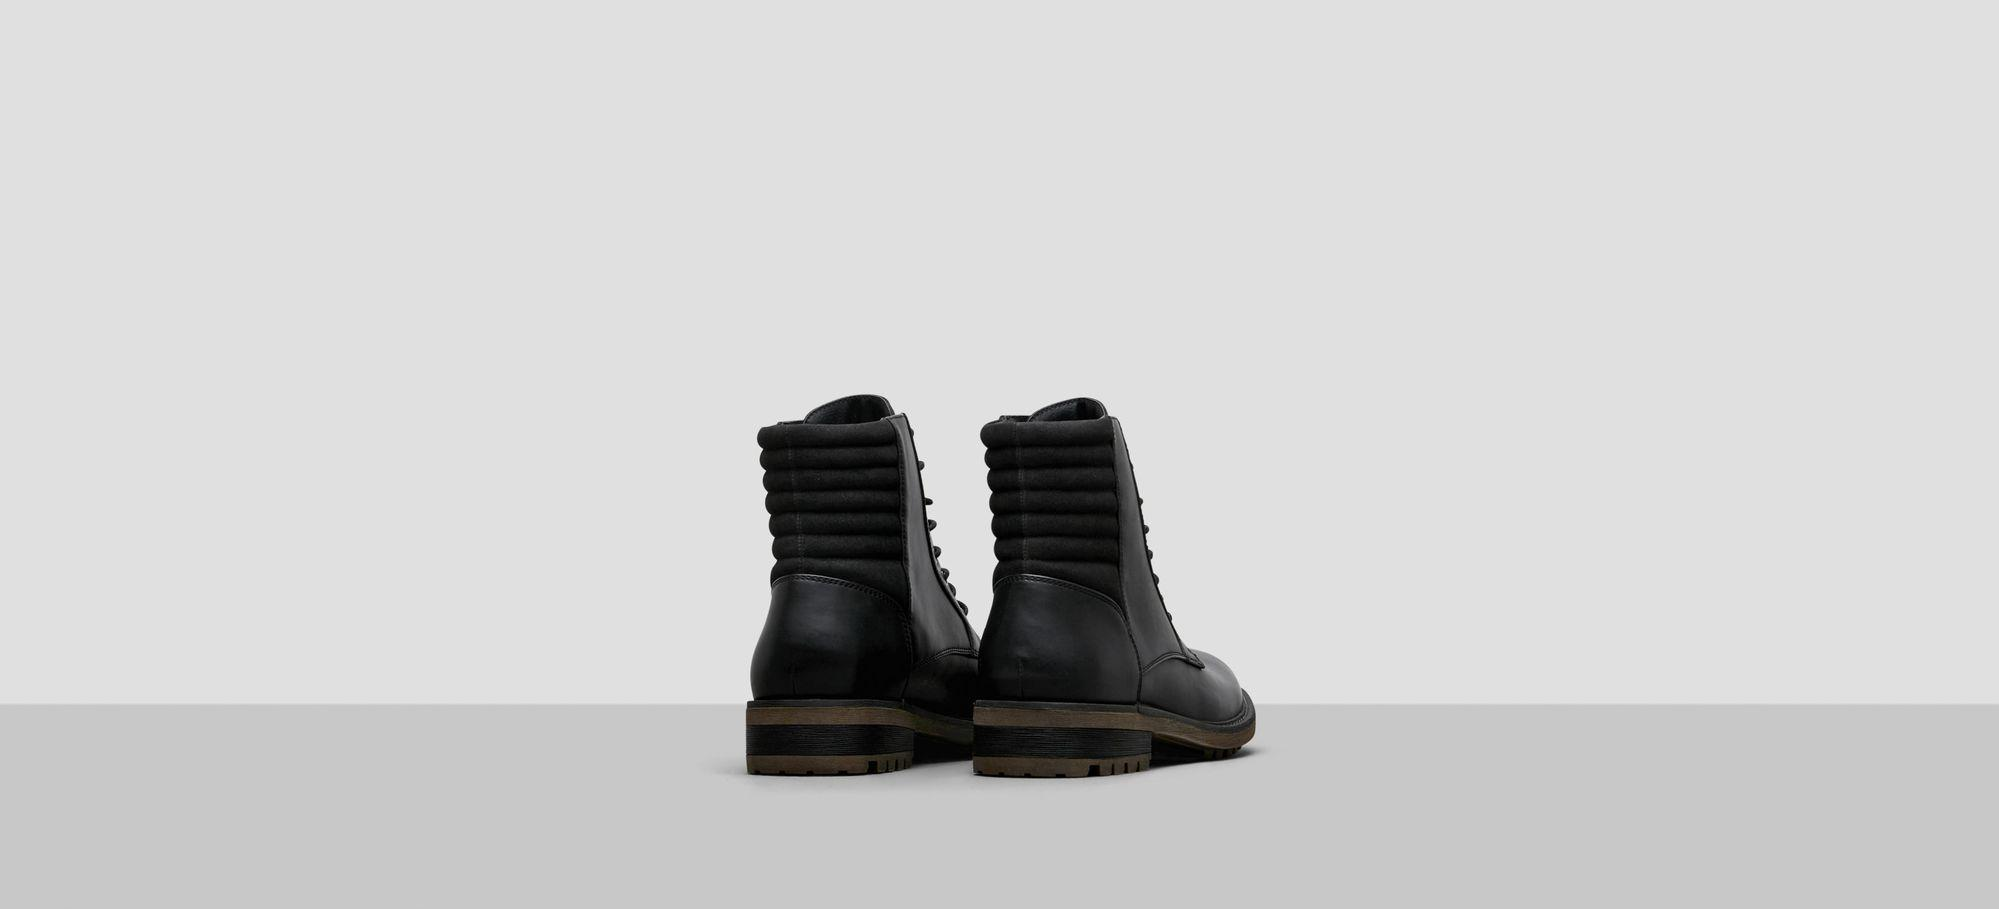 Beat It Lace-Up Boot Kenneth Cole Reaction sztoeQB1k